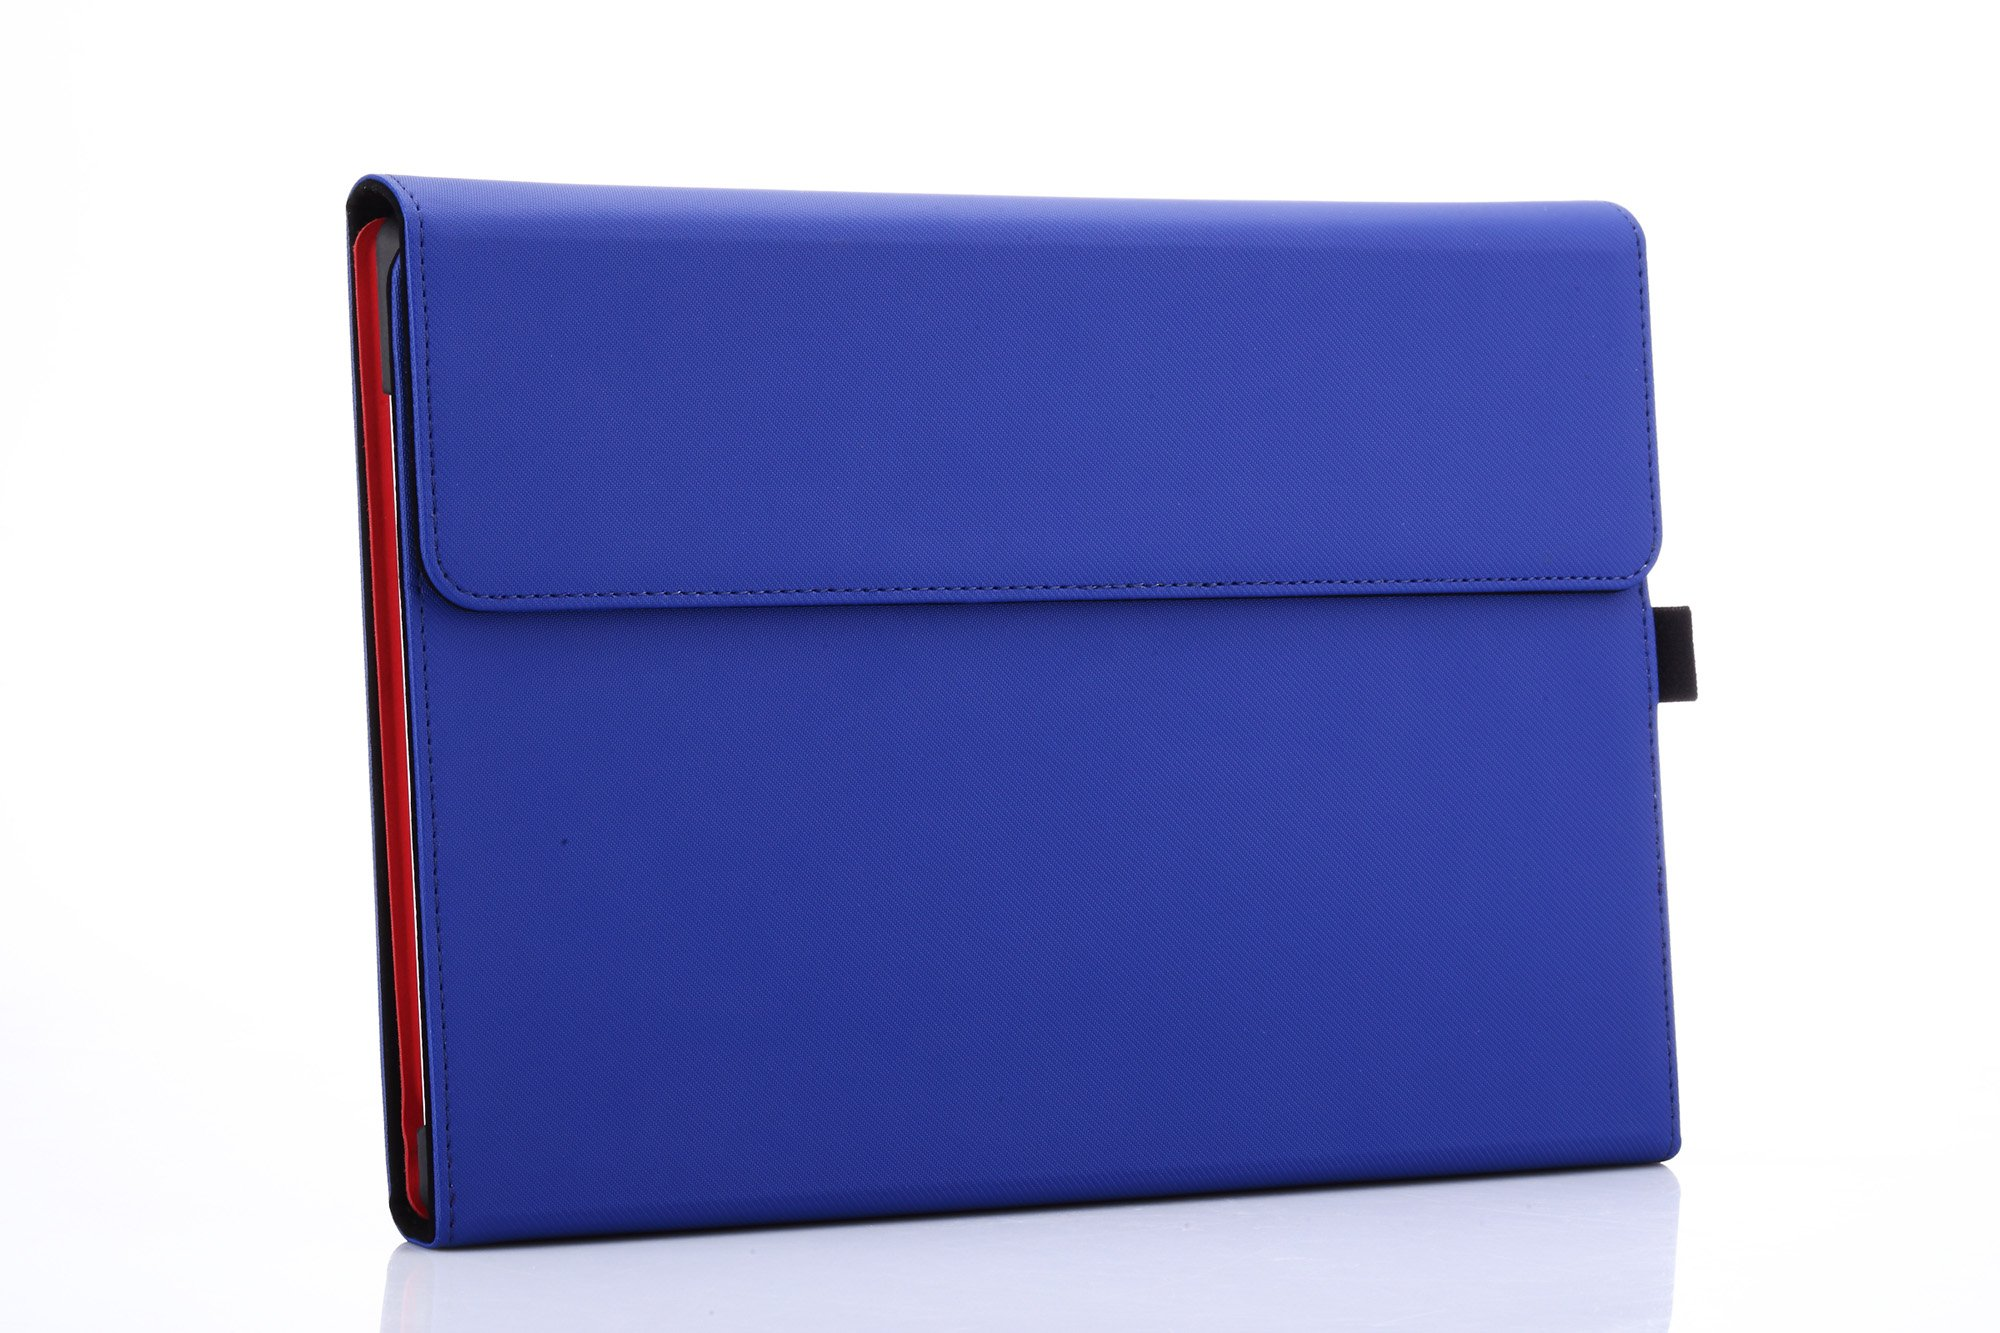 Microsoft Surface 3 Case, Compatible Surface 3 Type Cover, Valkit Folio Slim PU Leather Stand Cases and Covers With Stylus Pen Holder Compatible for Surface 3 10.8 inch Original Keyboard, Blue